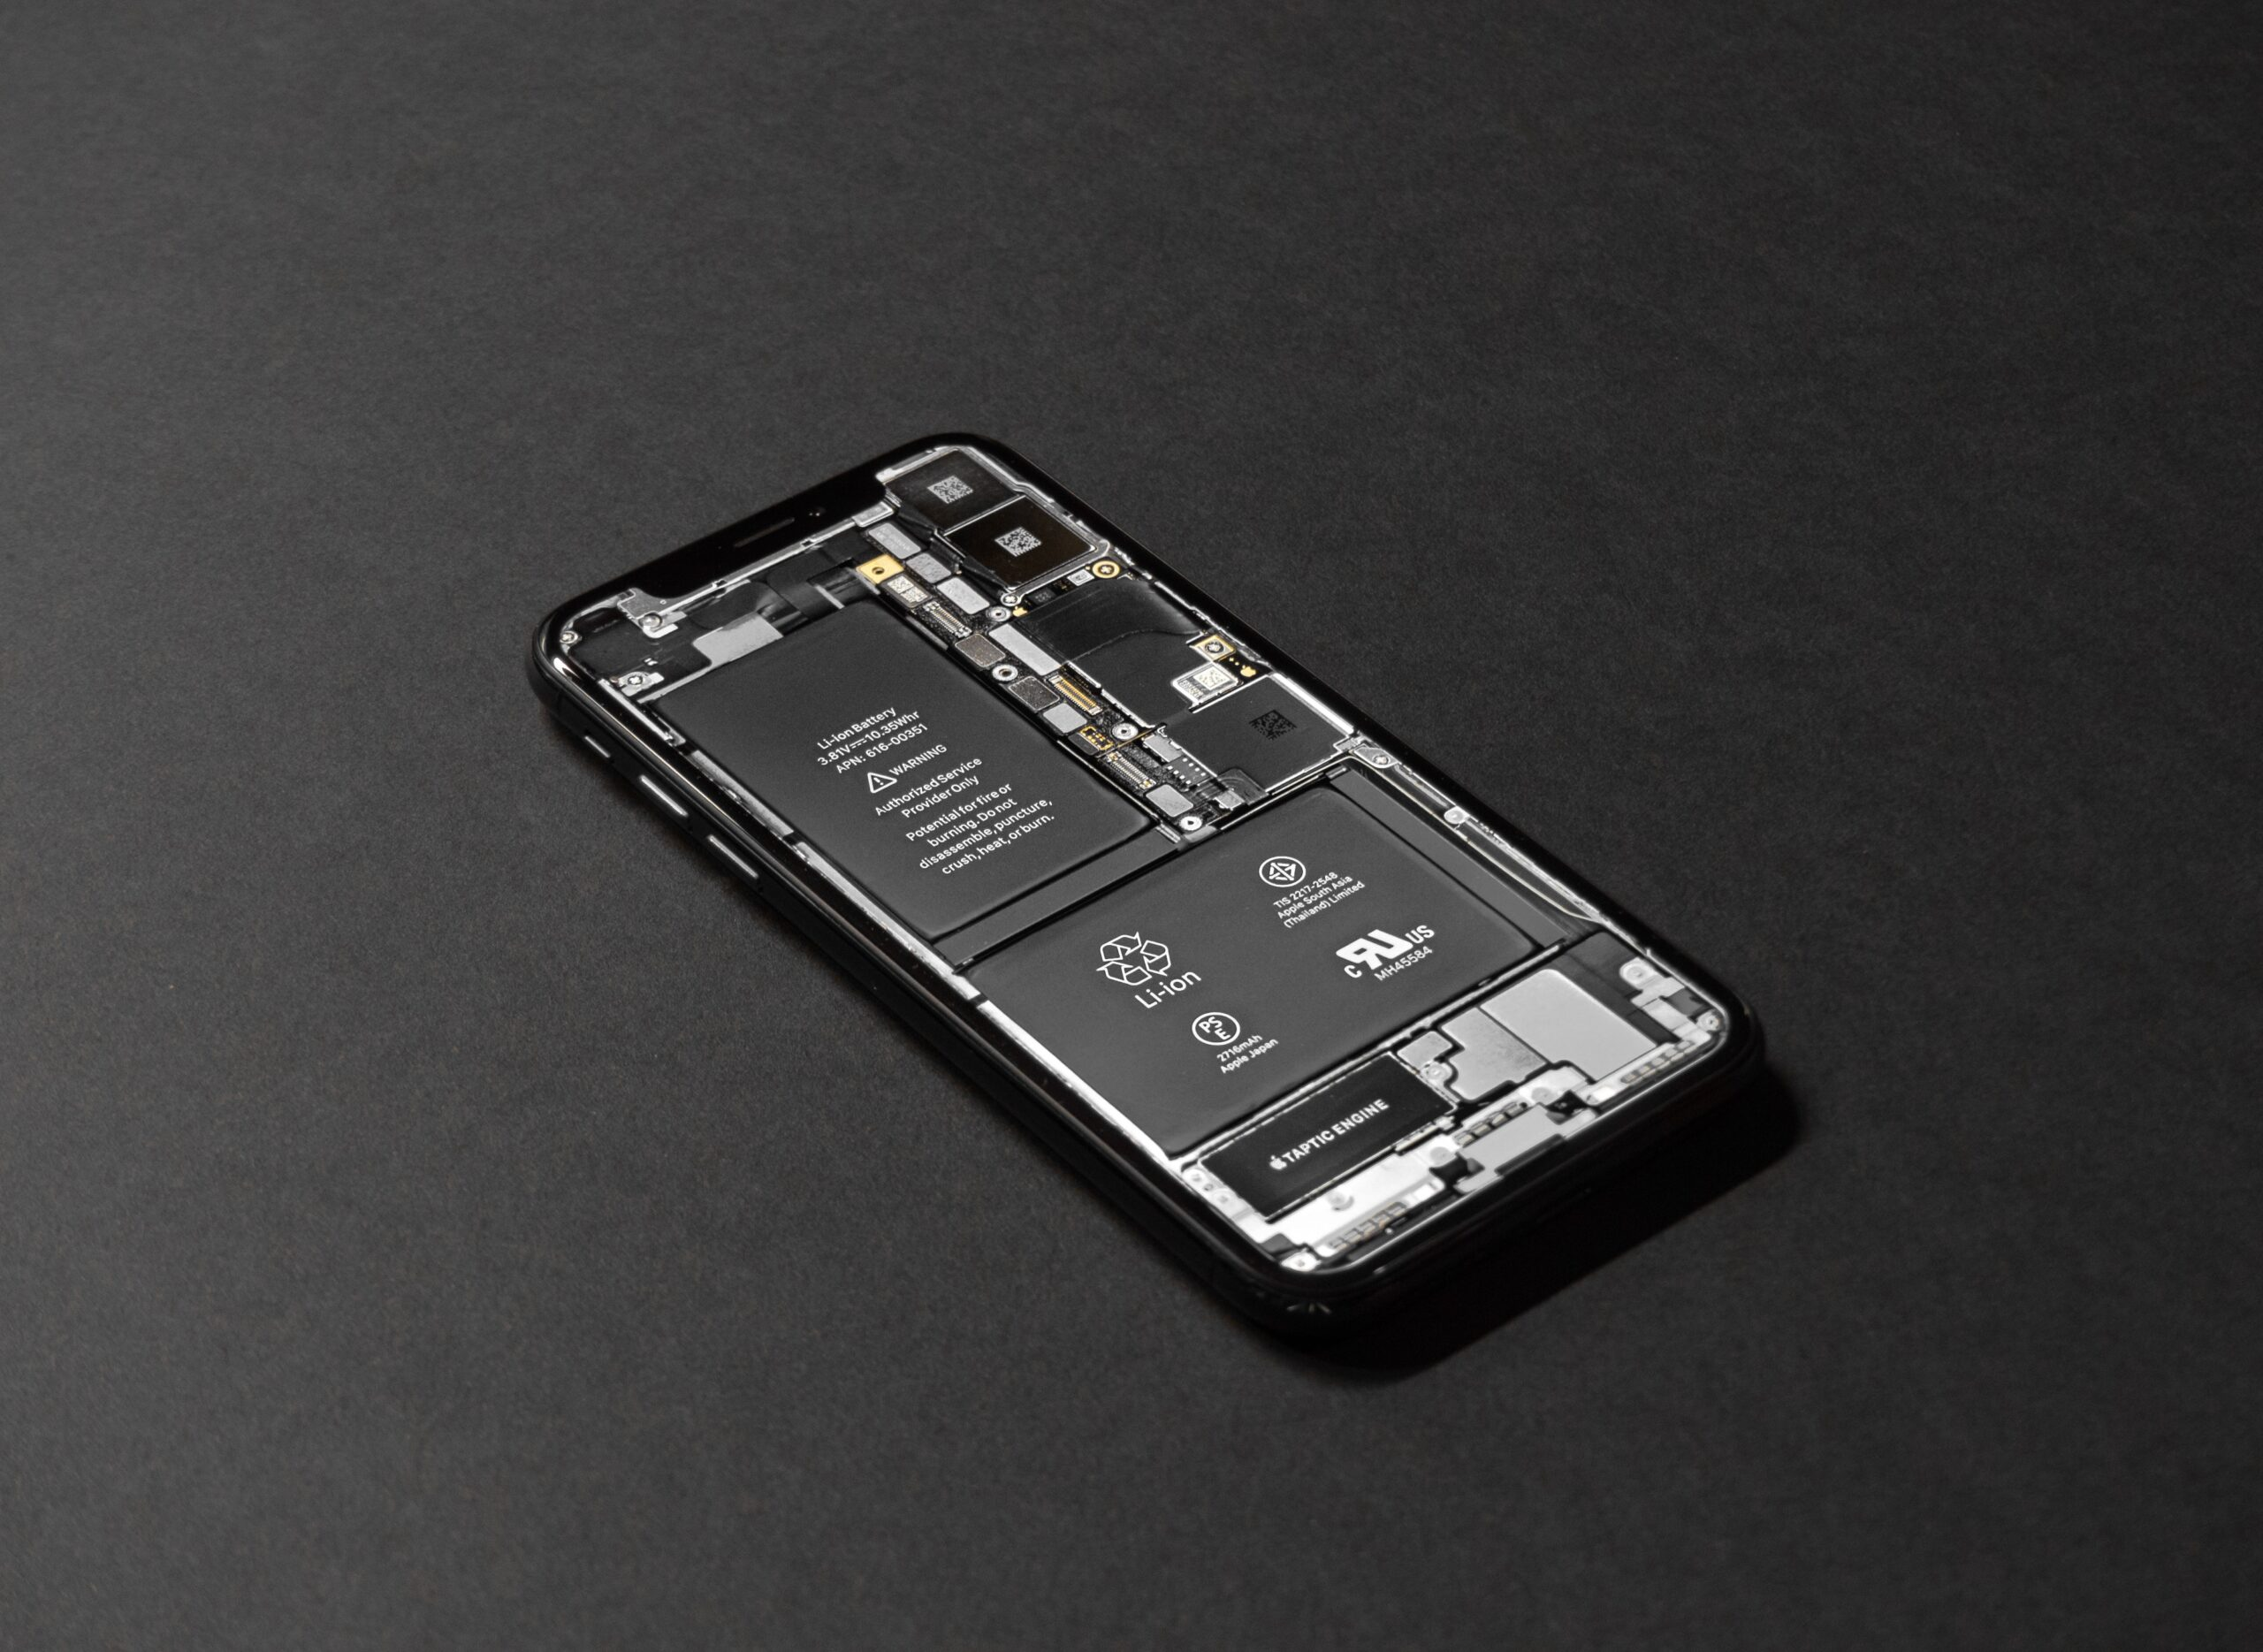 reparar iPhone en Menorca